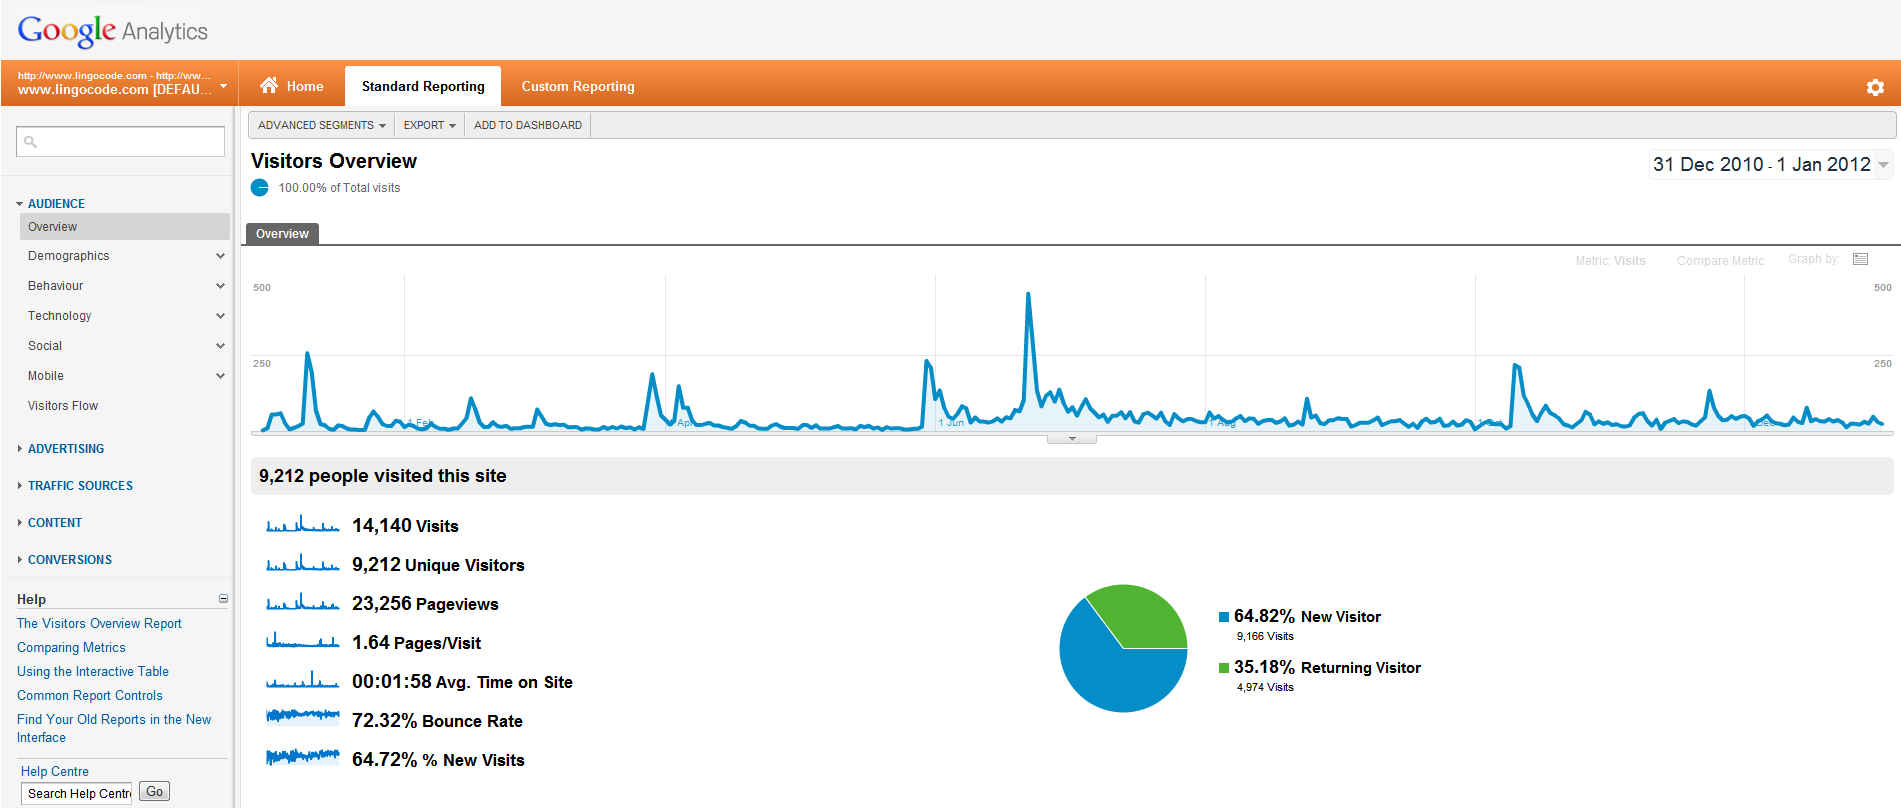 Google Analytics for the past year